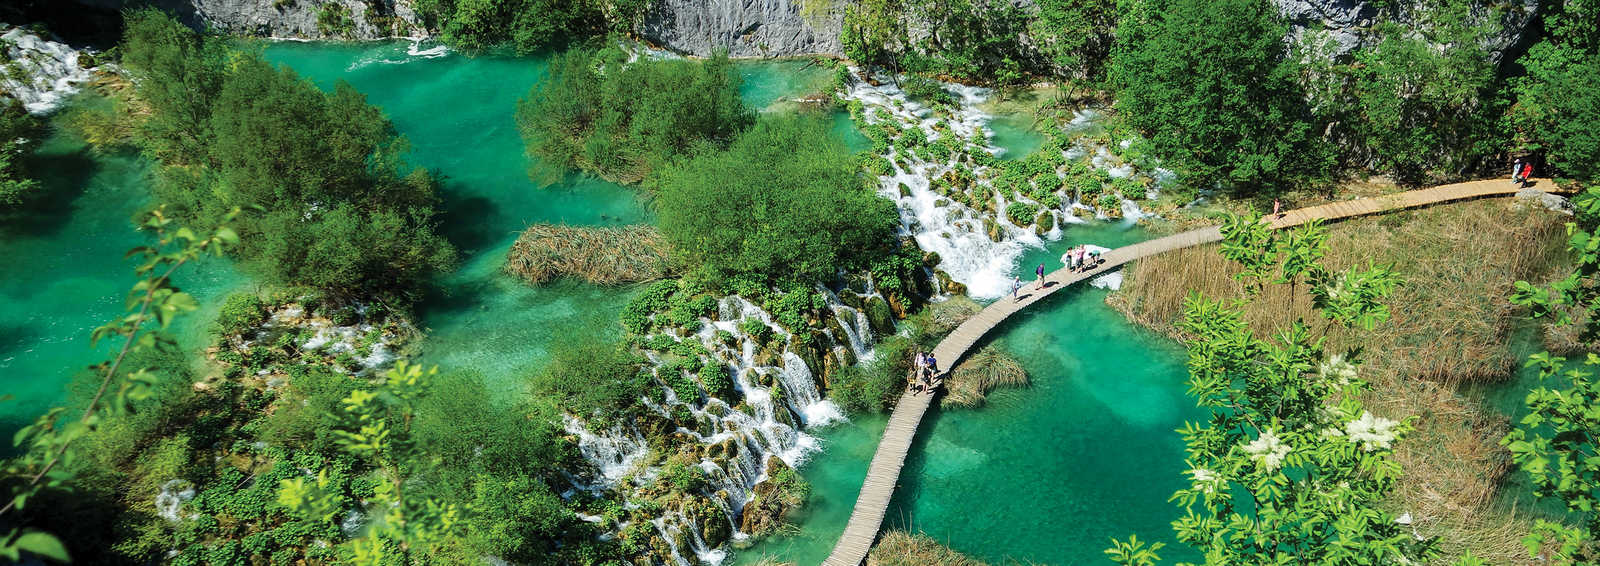 Waterfalls and walking trail, Plitvice Lakes National Park, Croatia